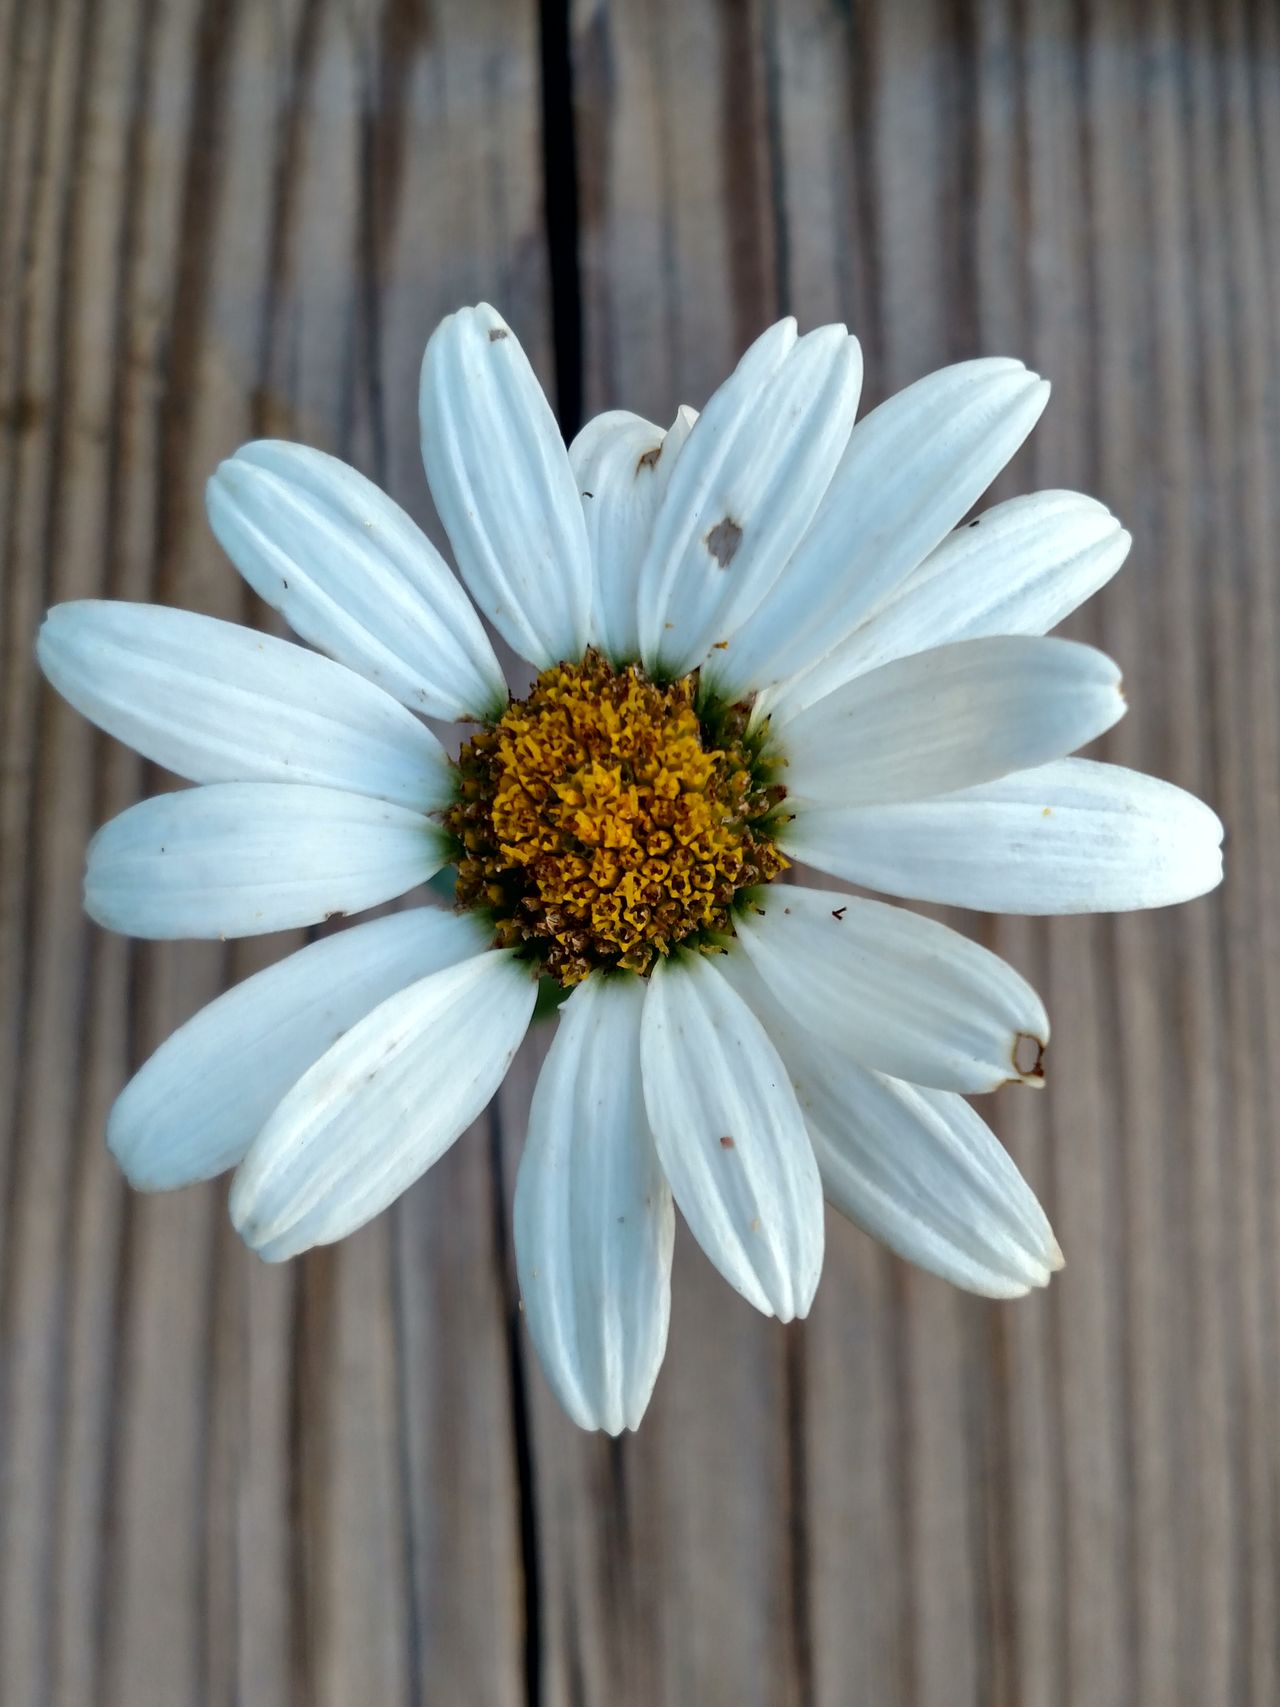 Wood Grain Daisy Daisy Flower Daisy Close Up Daisyporn Artistic Photo Artistic Eye Botany Flower Porn Flower Photography Through My Lens Petal Art Flower Collection From My Point Of View EyeEm Nature Lover Ladyphotographerofthemonth Femalephotographerofthemonth From Where I Stand Daisies Are My Favorite Artistic Expression